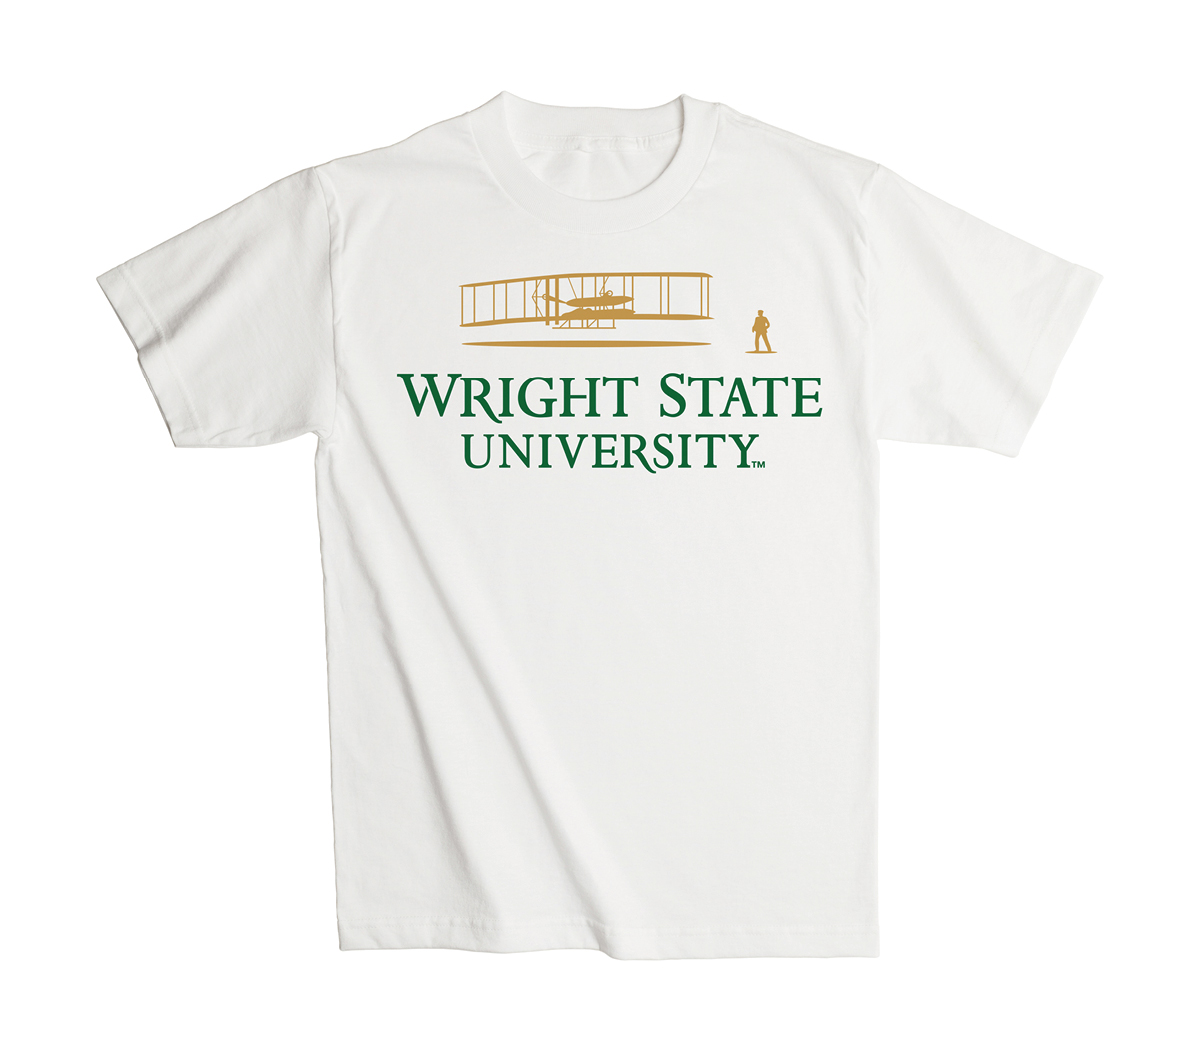 T-shirt example of Wright State University merchandise